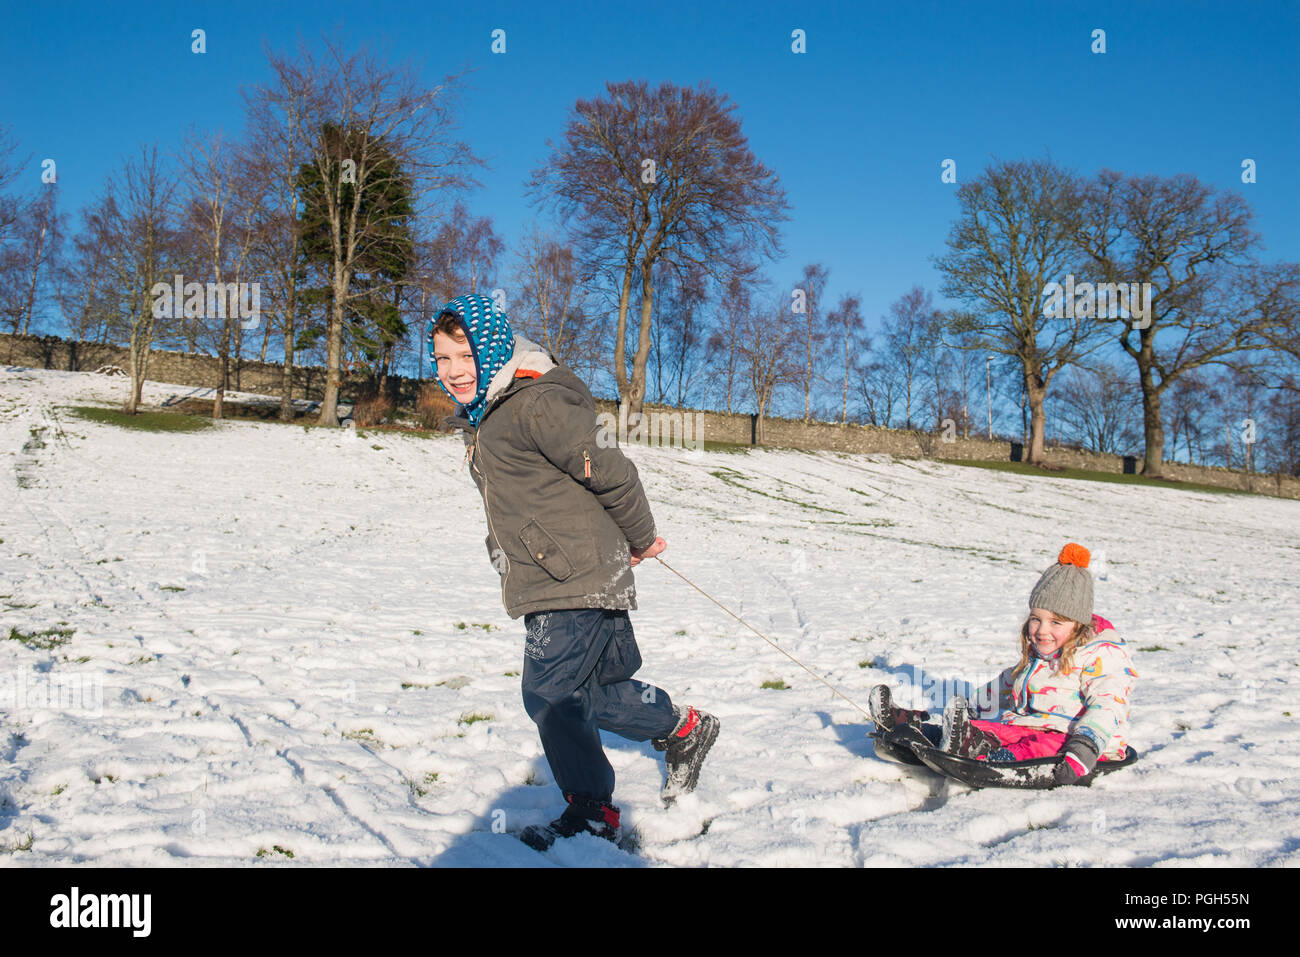 JP PHOTOSALES WWW.IANGEORGESONPHOTOGRAPHY.CO.UK Picture: Sam 7 and Lily 4 Ellis Peebles, Sledging in the snow at Haylodge park - Stock Image